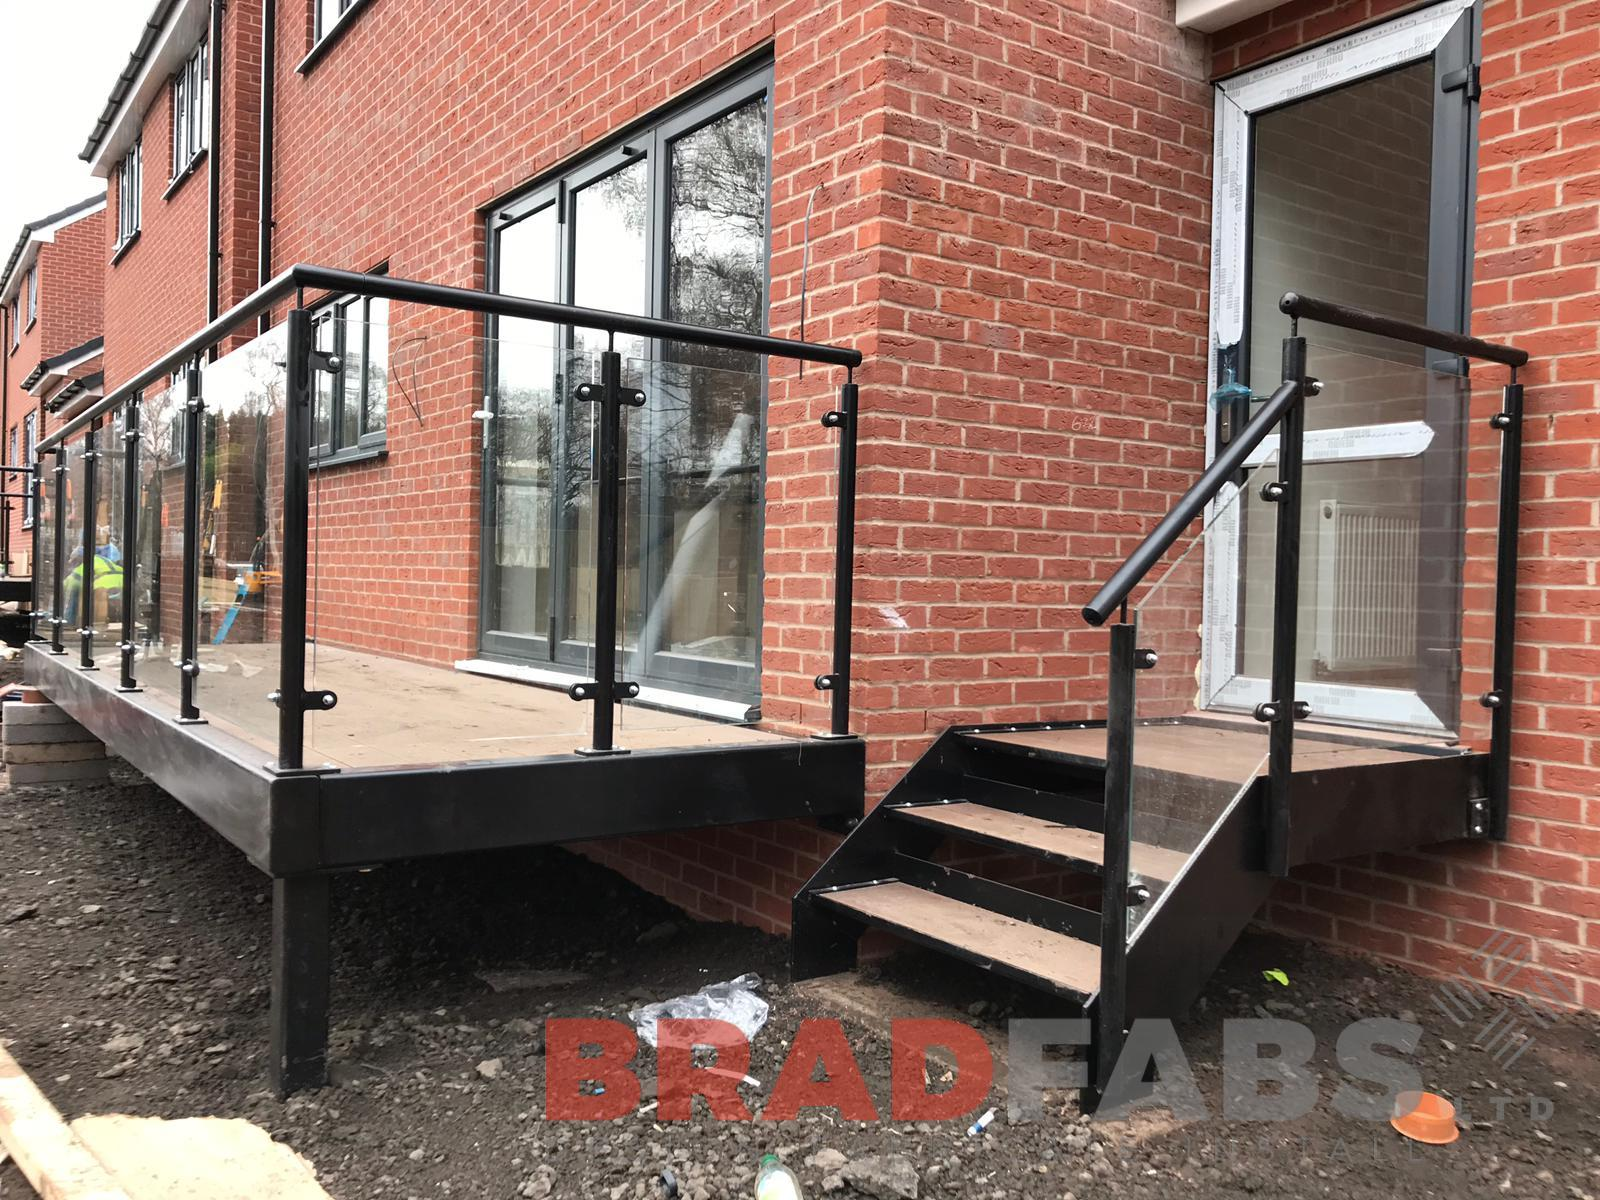 Mild steel balustrade, Galvanised balustrade, Powder coated black balustrade, glass infill panels, external stair and balcony